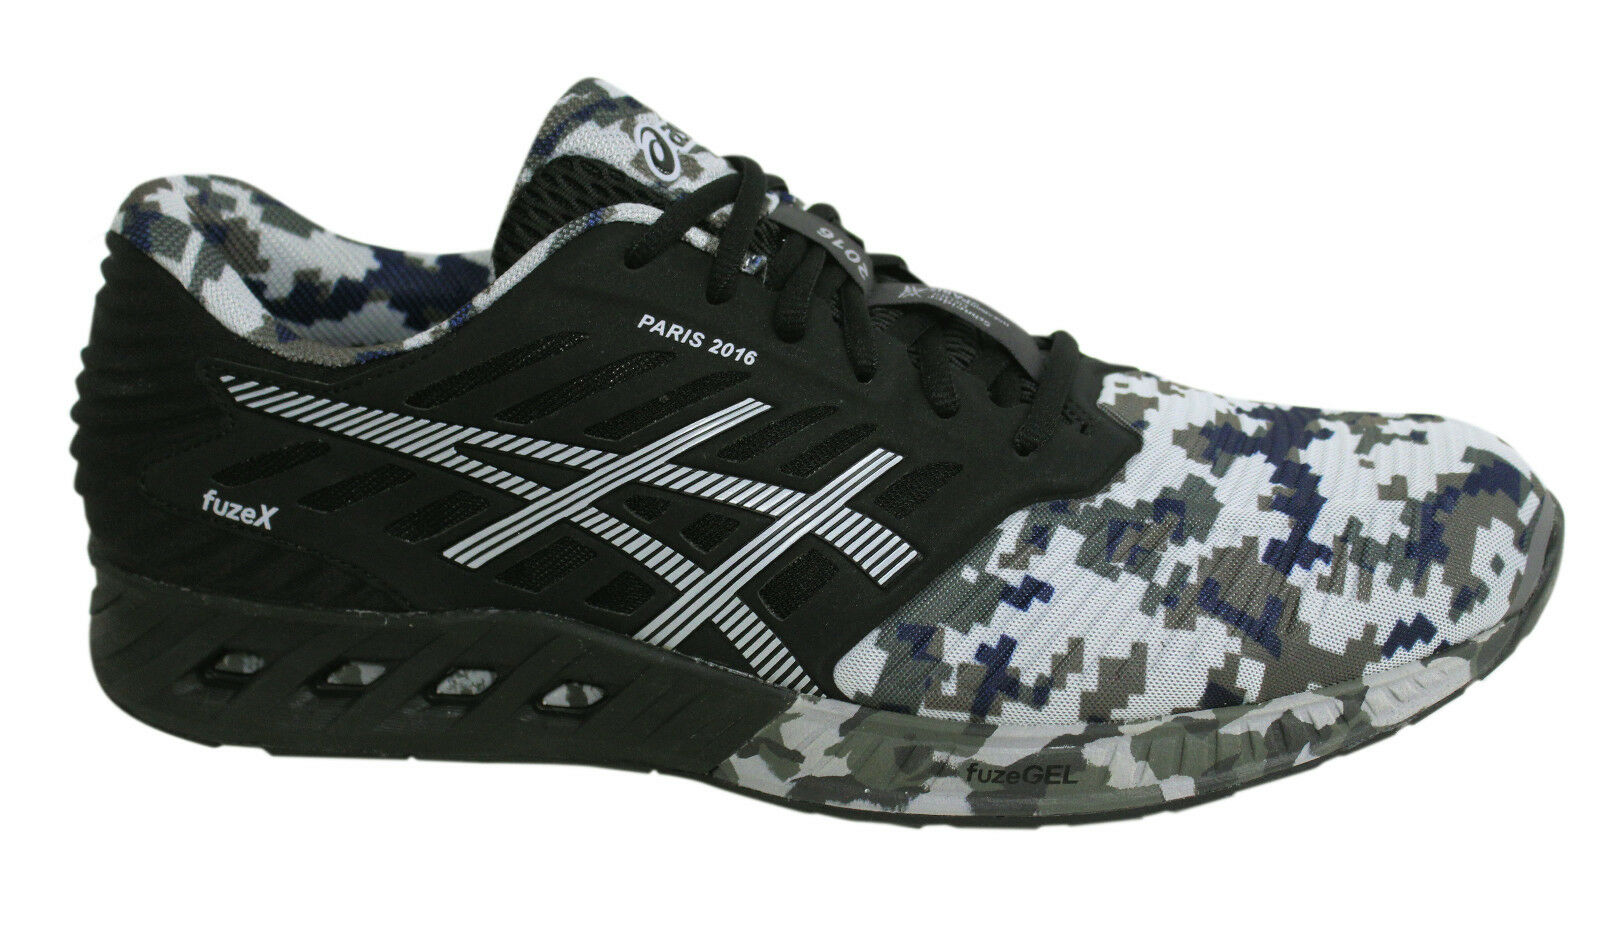 Asics fuzeX Paris Black Marathon 2016 Lace Up Black Paris Camo Mens Trainers T61UQ 9017 M9 6d41e3